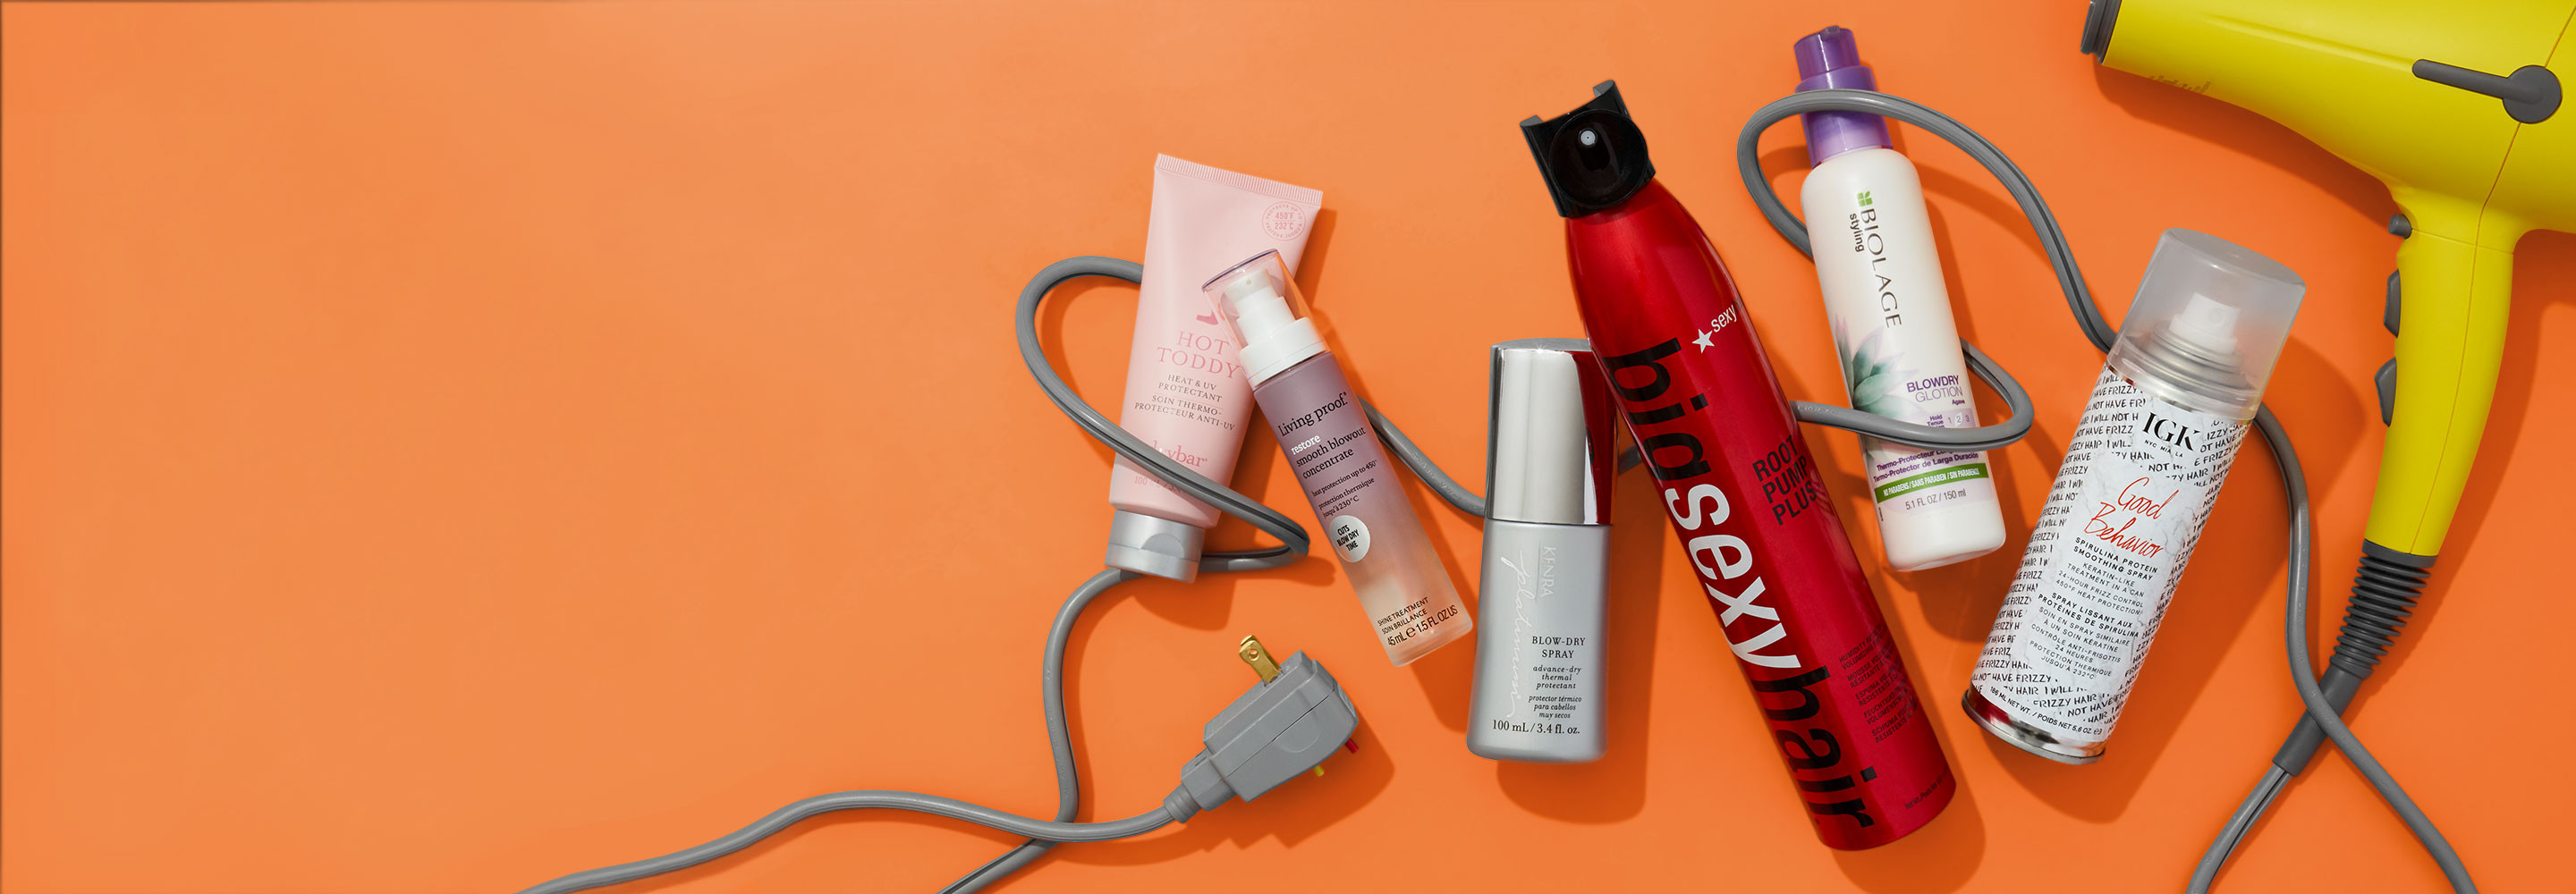 Keep your blowout bouncy, sleek and chic  no matter what summer throws at it.